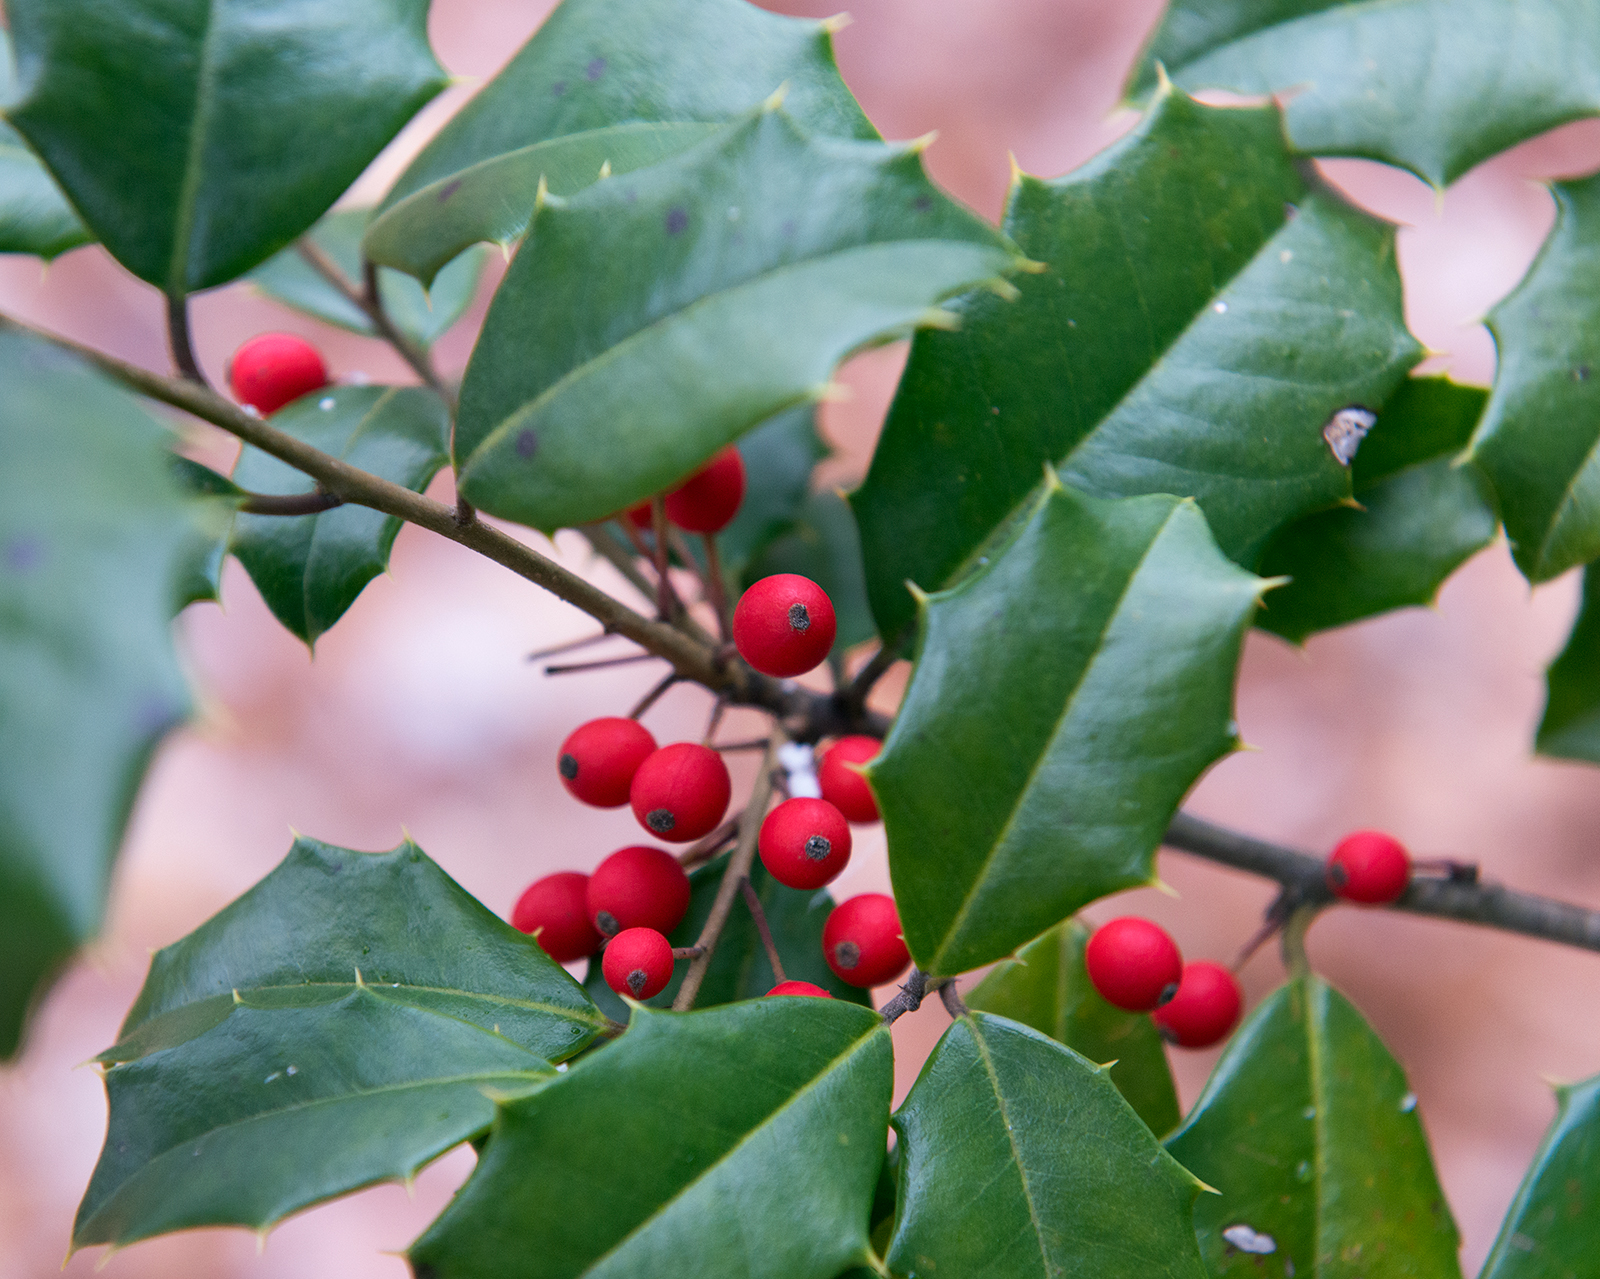 holly-plant-poisonous-to-cats